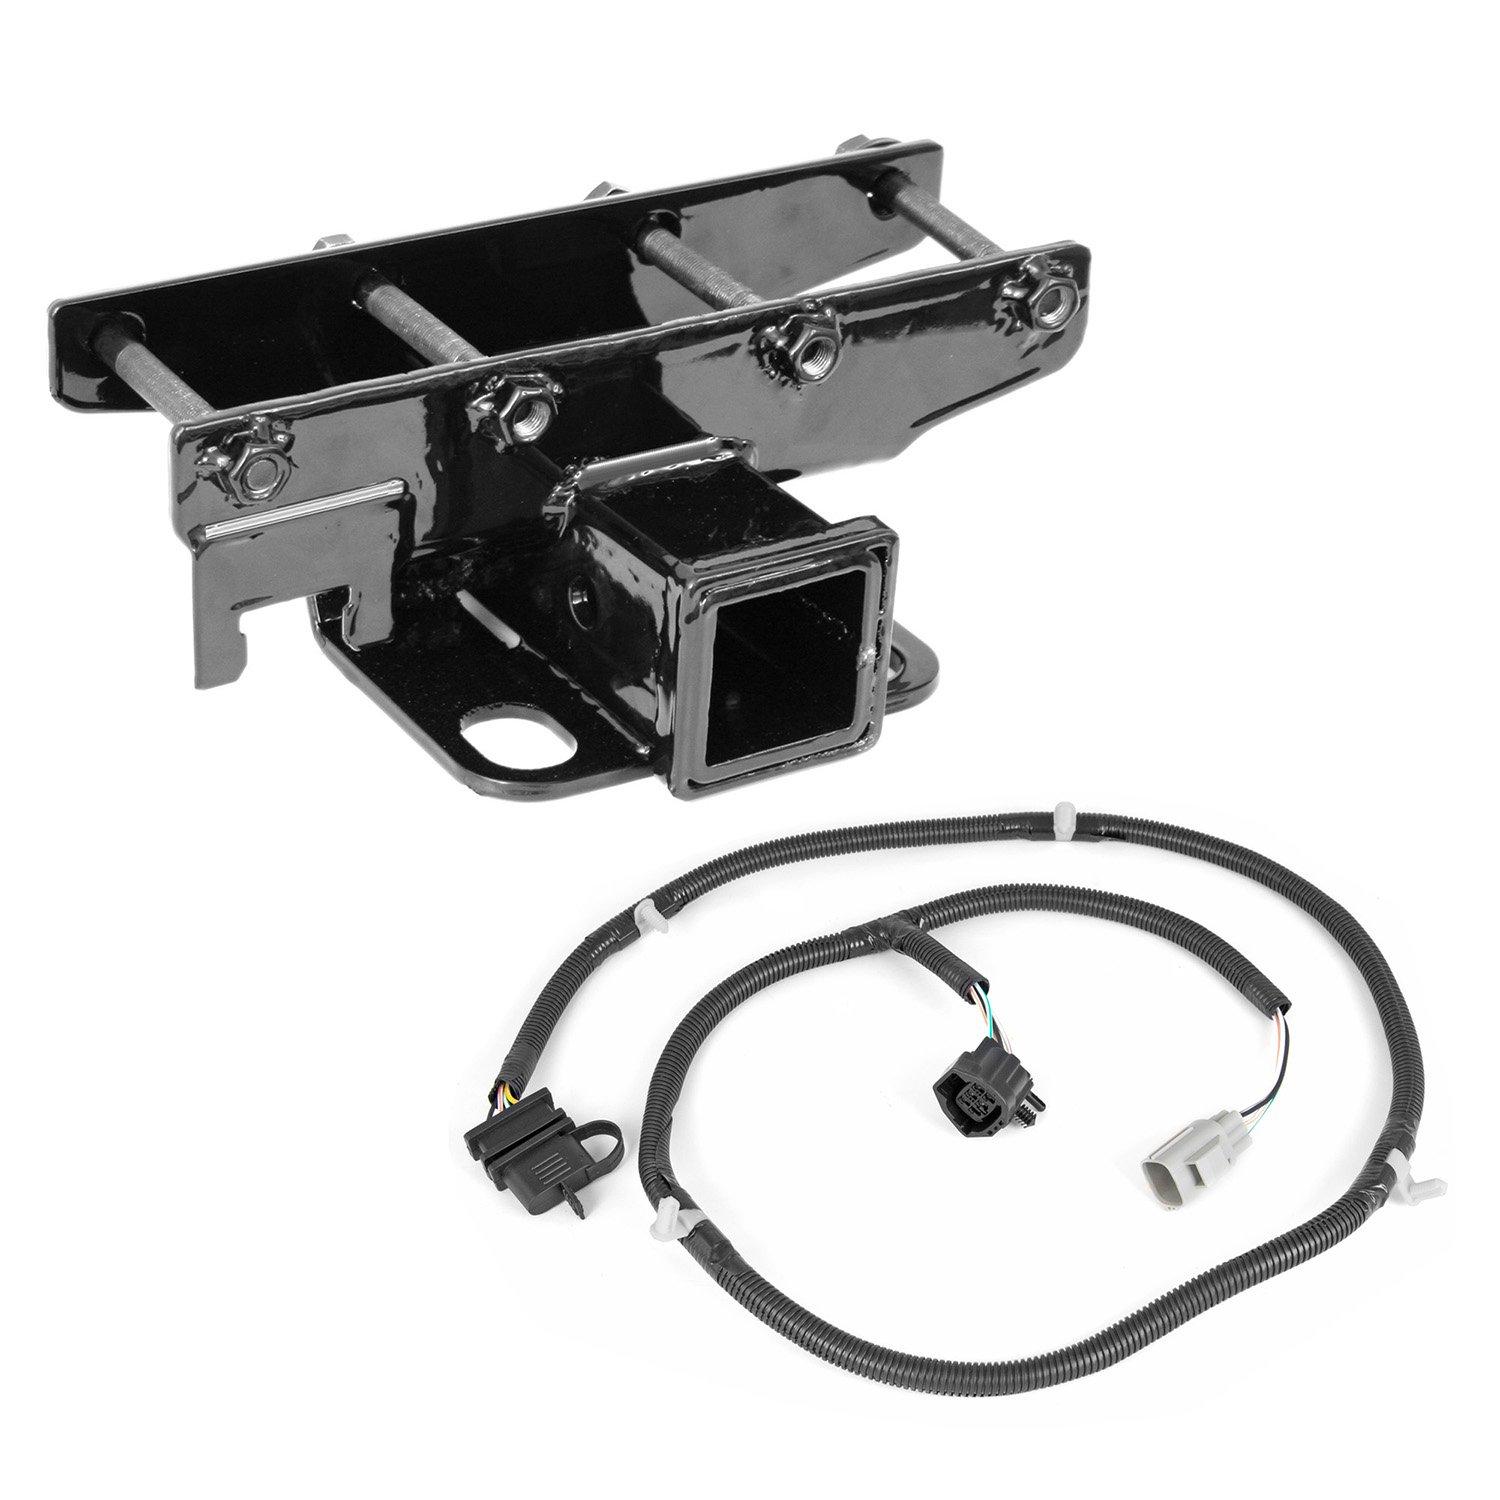 Outland 391158051 Receiver Hitch Kit with Wiring Harness for JK by Outland Automotive